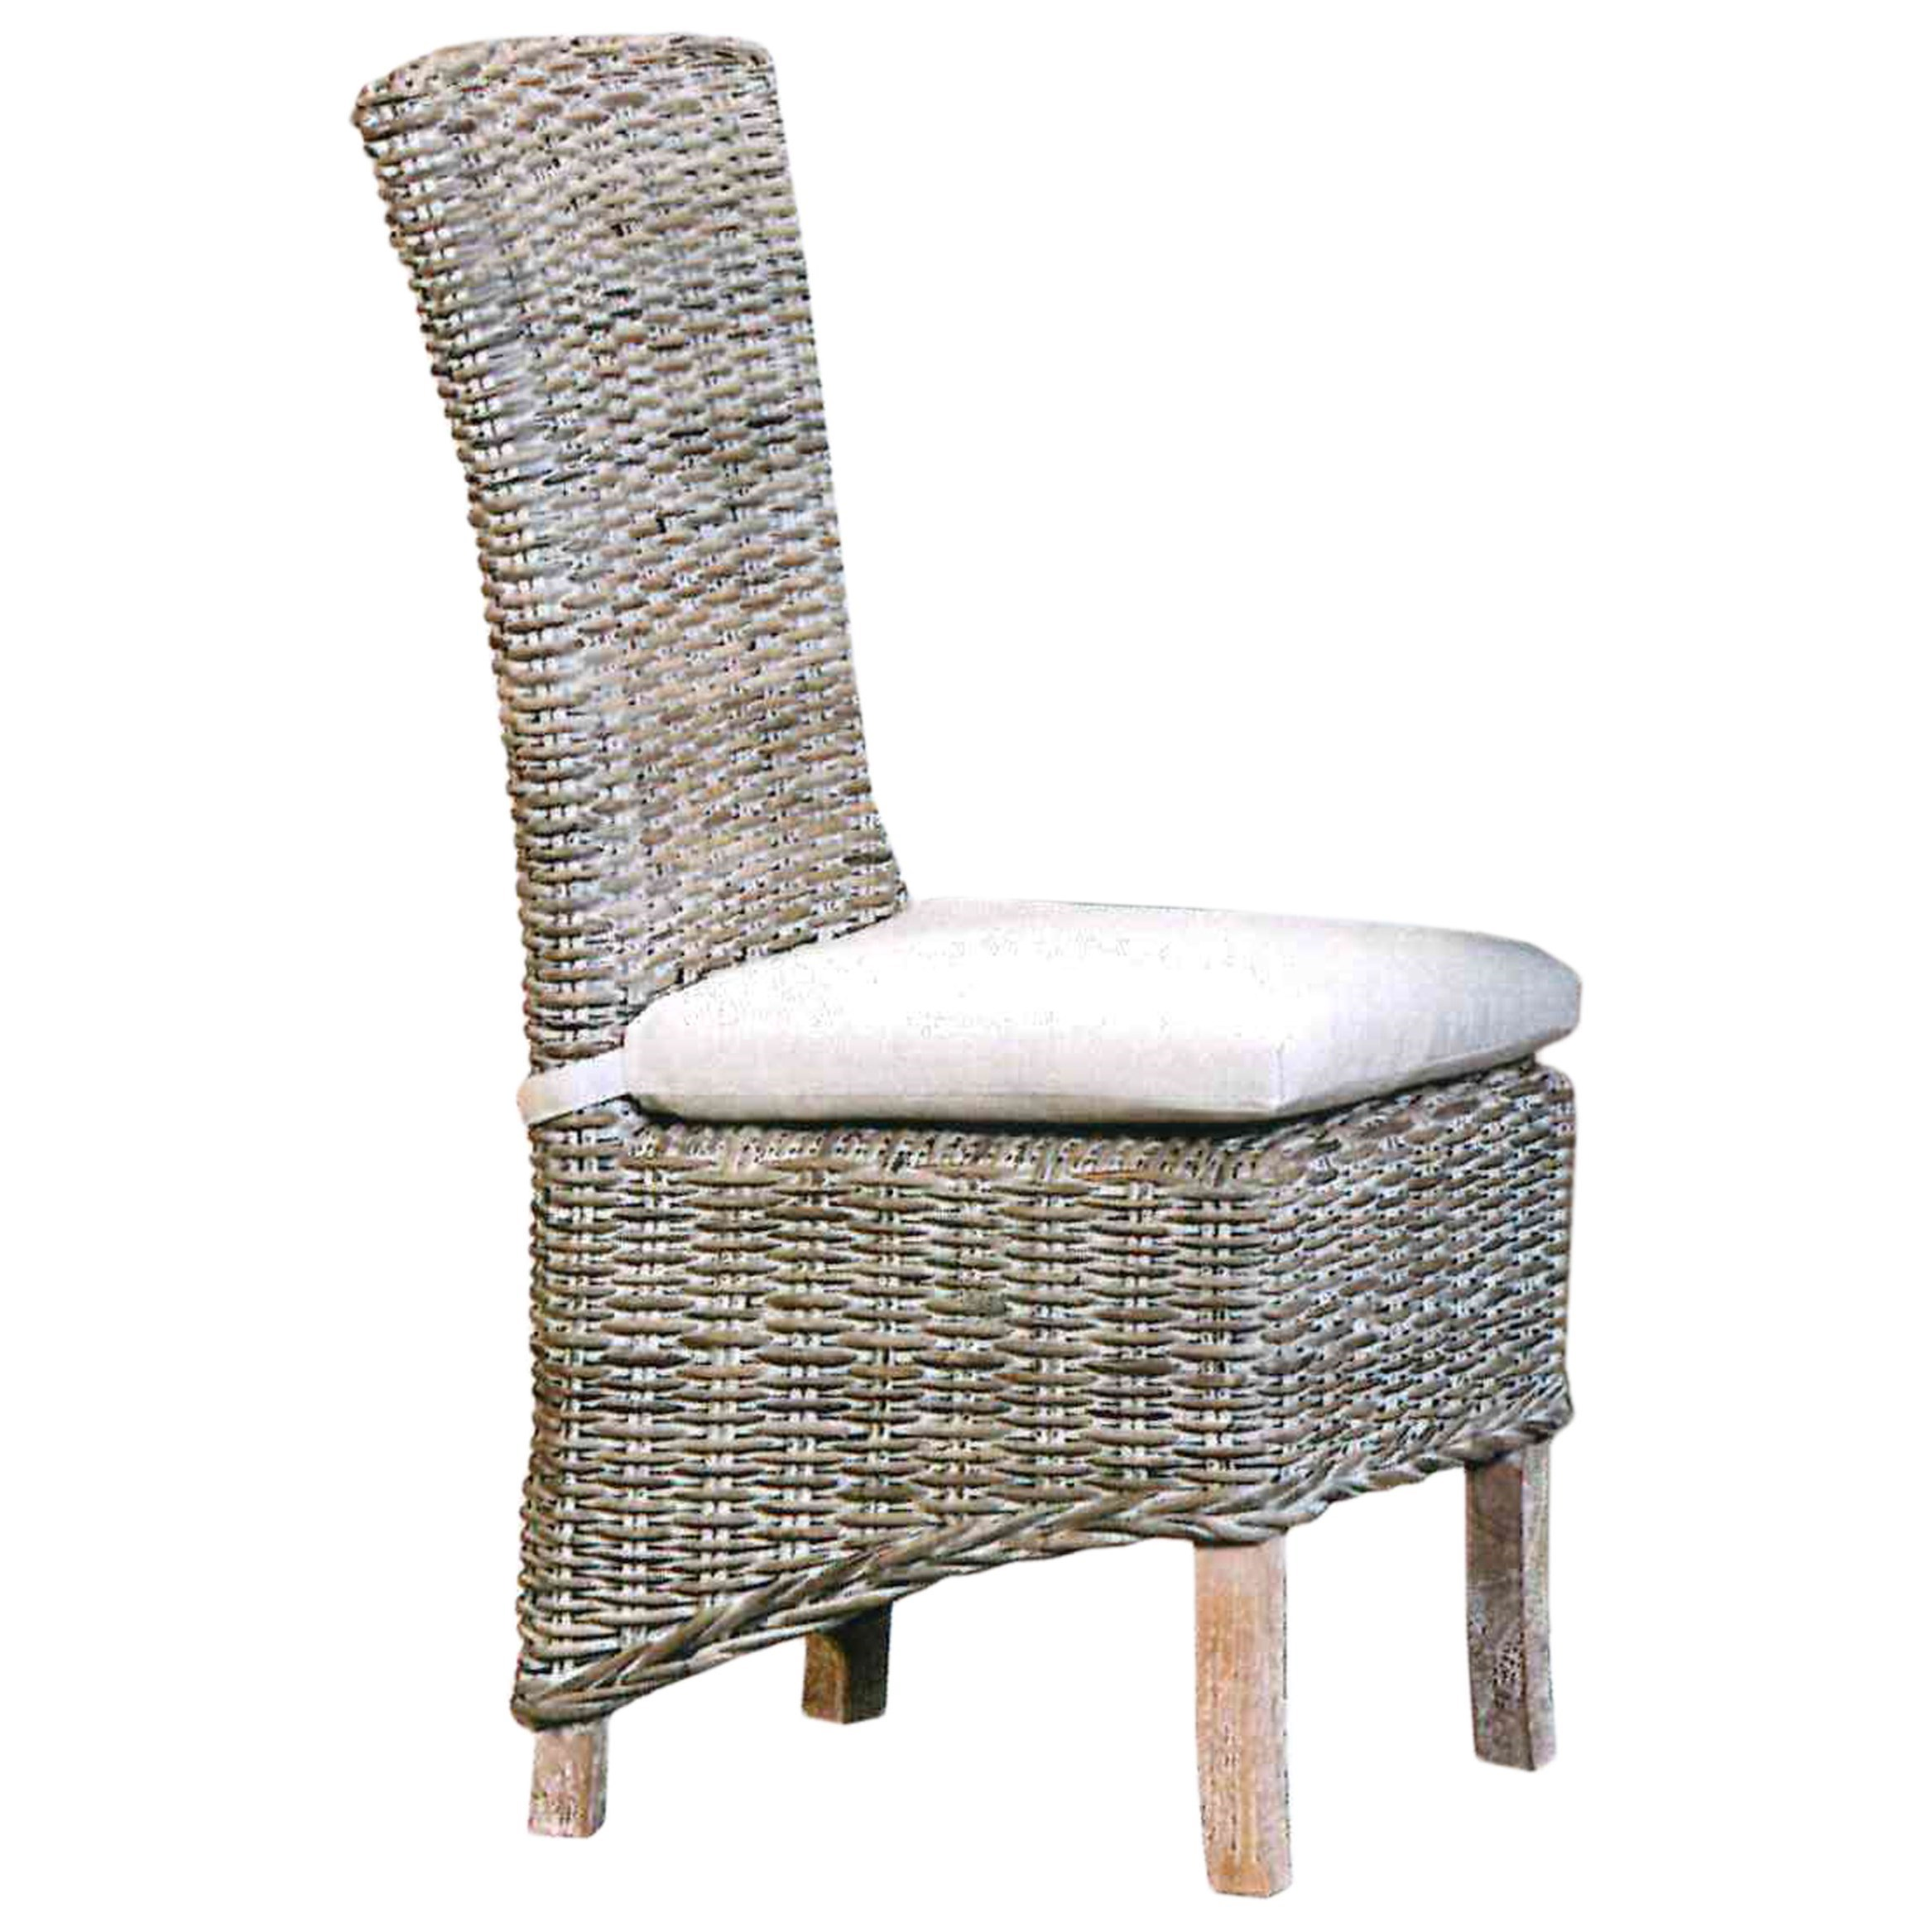 Capris Furniture Chairs and Ottomans Weathered Gray Wicker Dining Chair with Tie-On Cushion